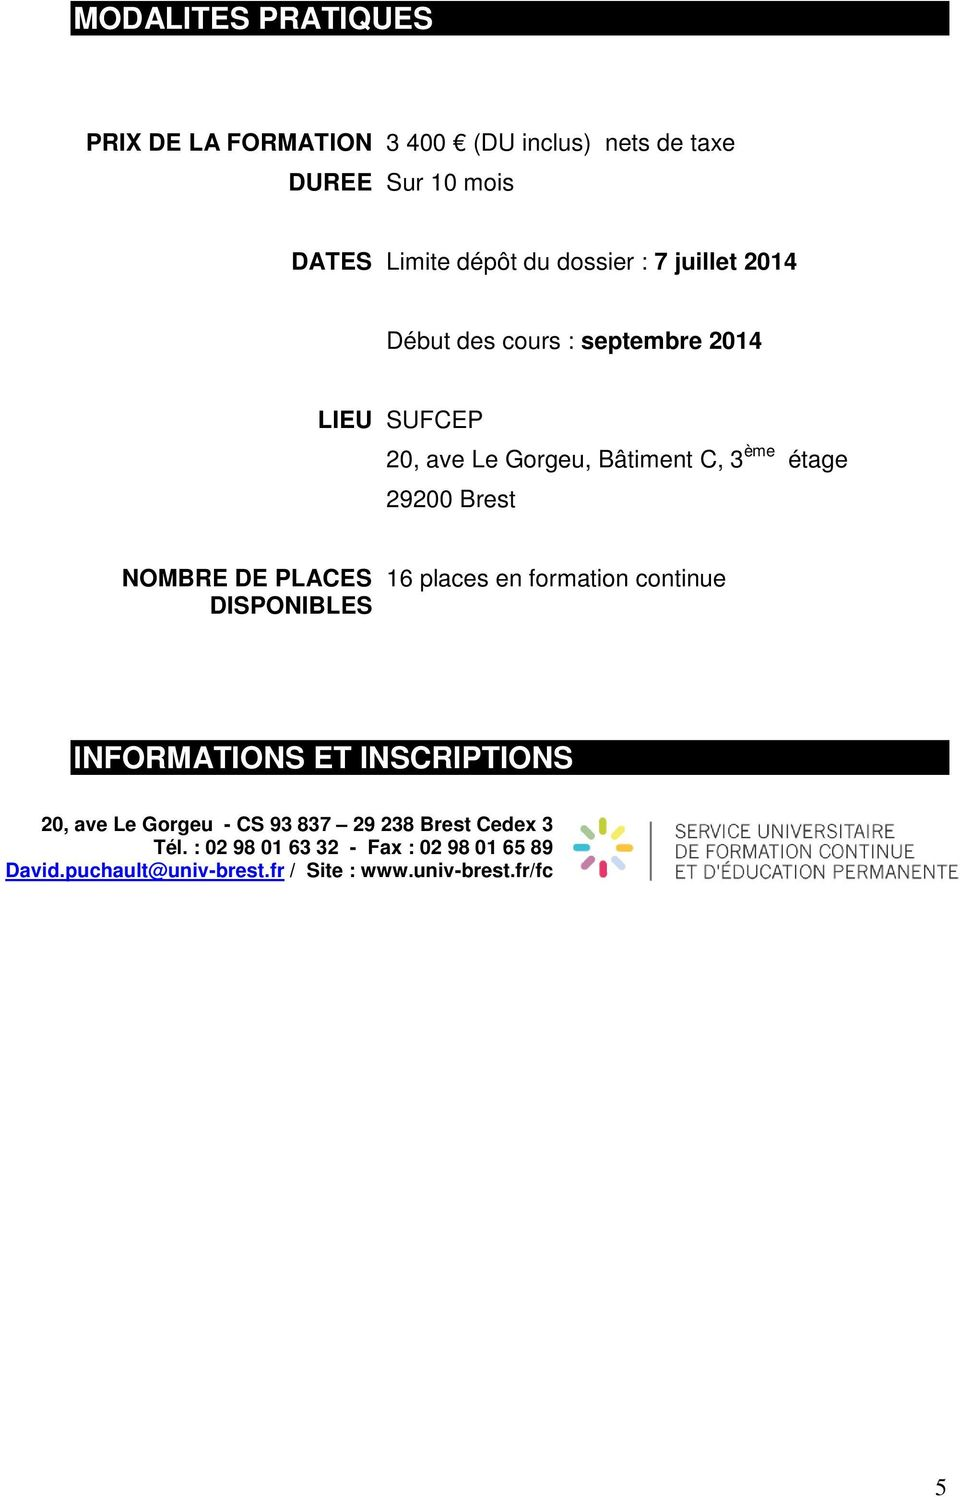 NOMBRE DE PLACES DISPONIBLES 16 places en formation continue INFORMATIONS ET INSCRIPTIONS 20, ave Le Gorgeu - CS 93 837